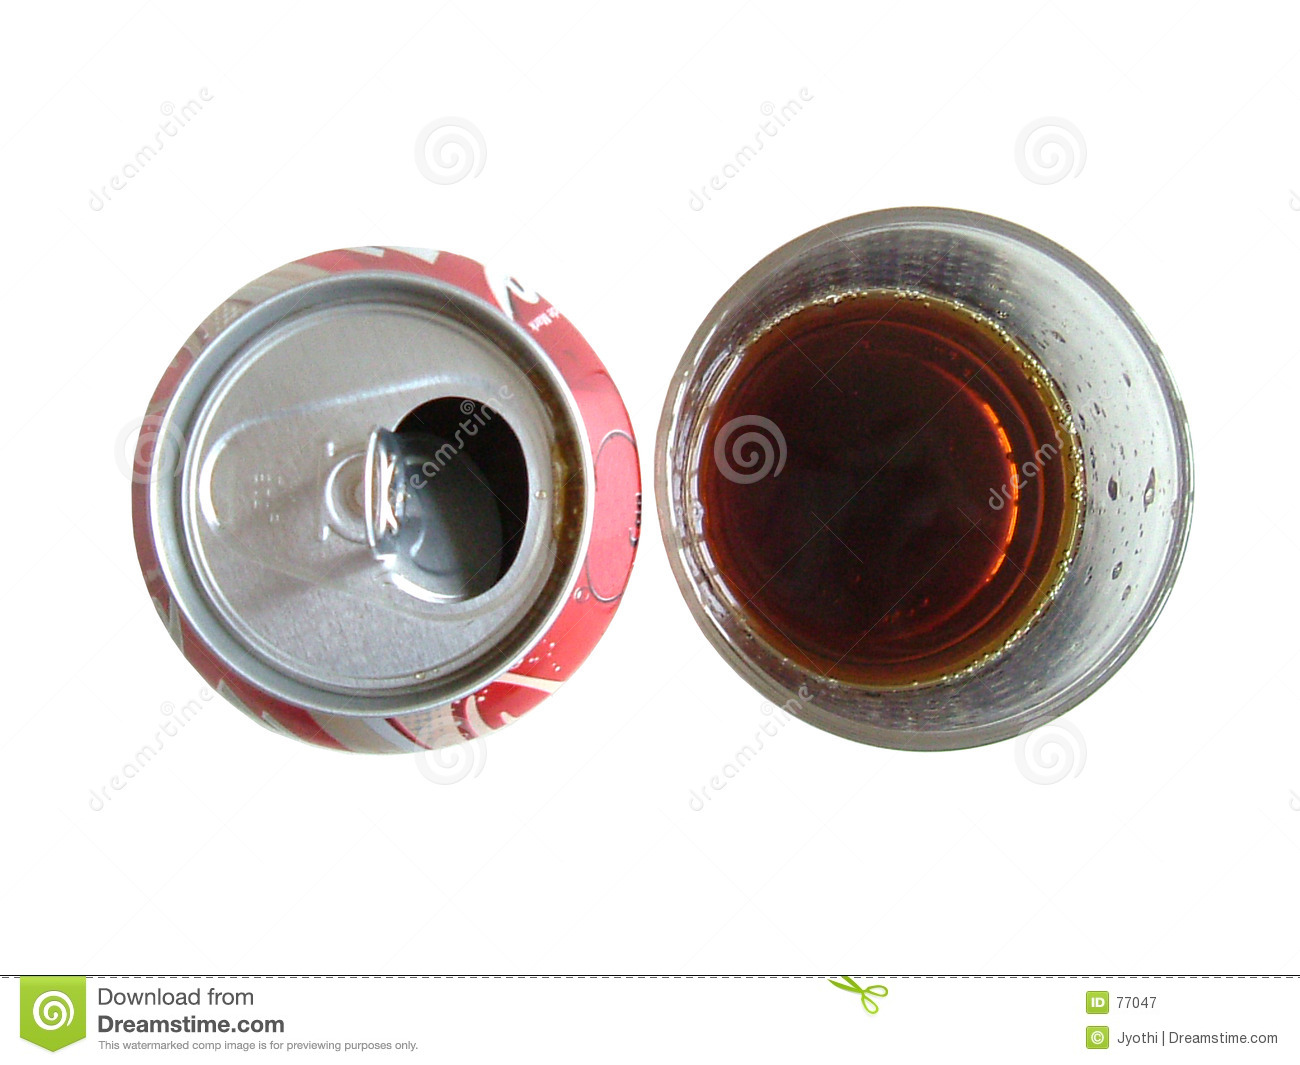 Cola in can and glass